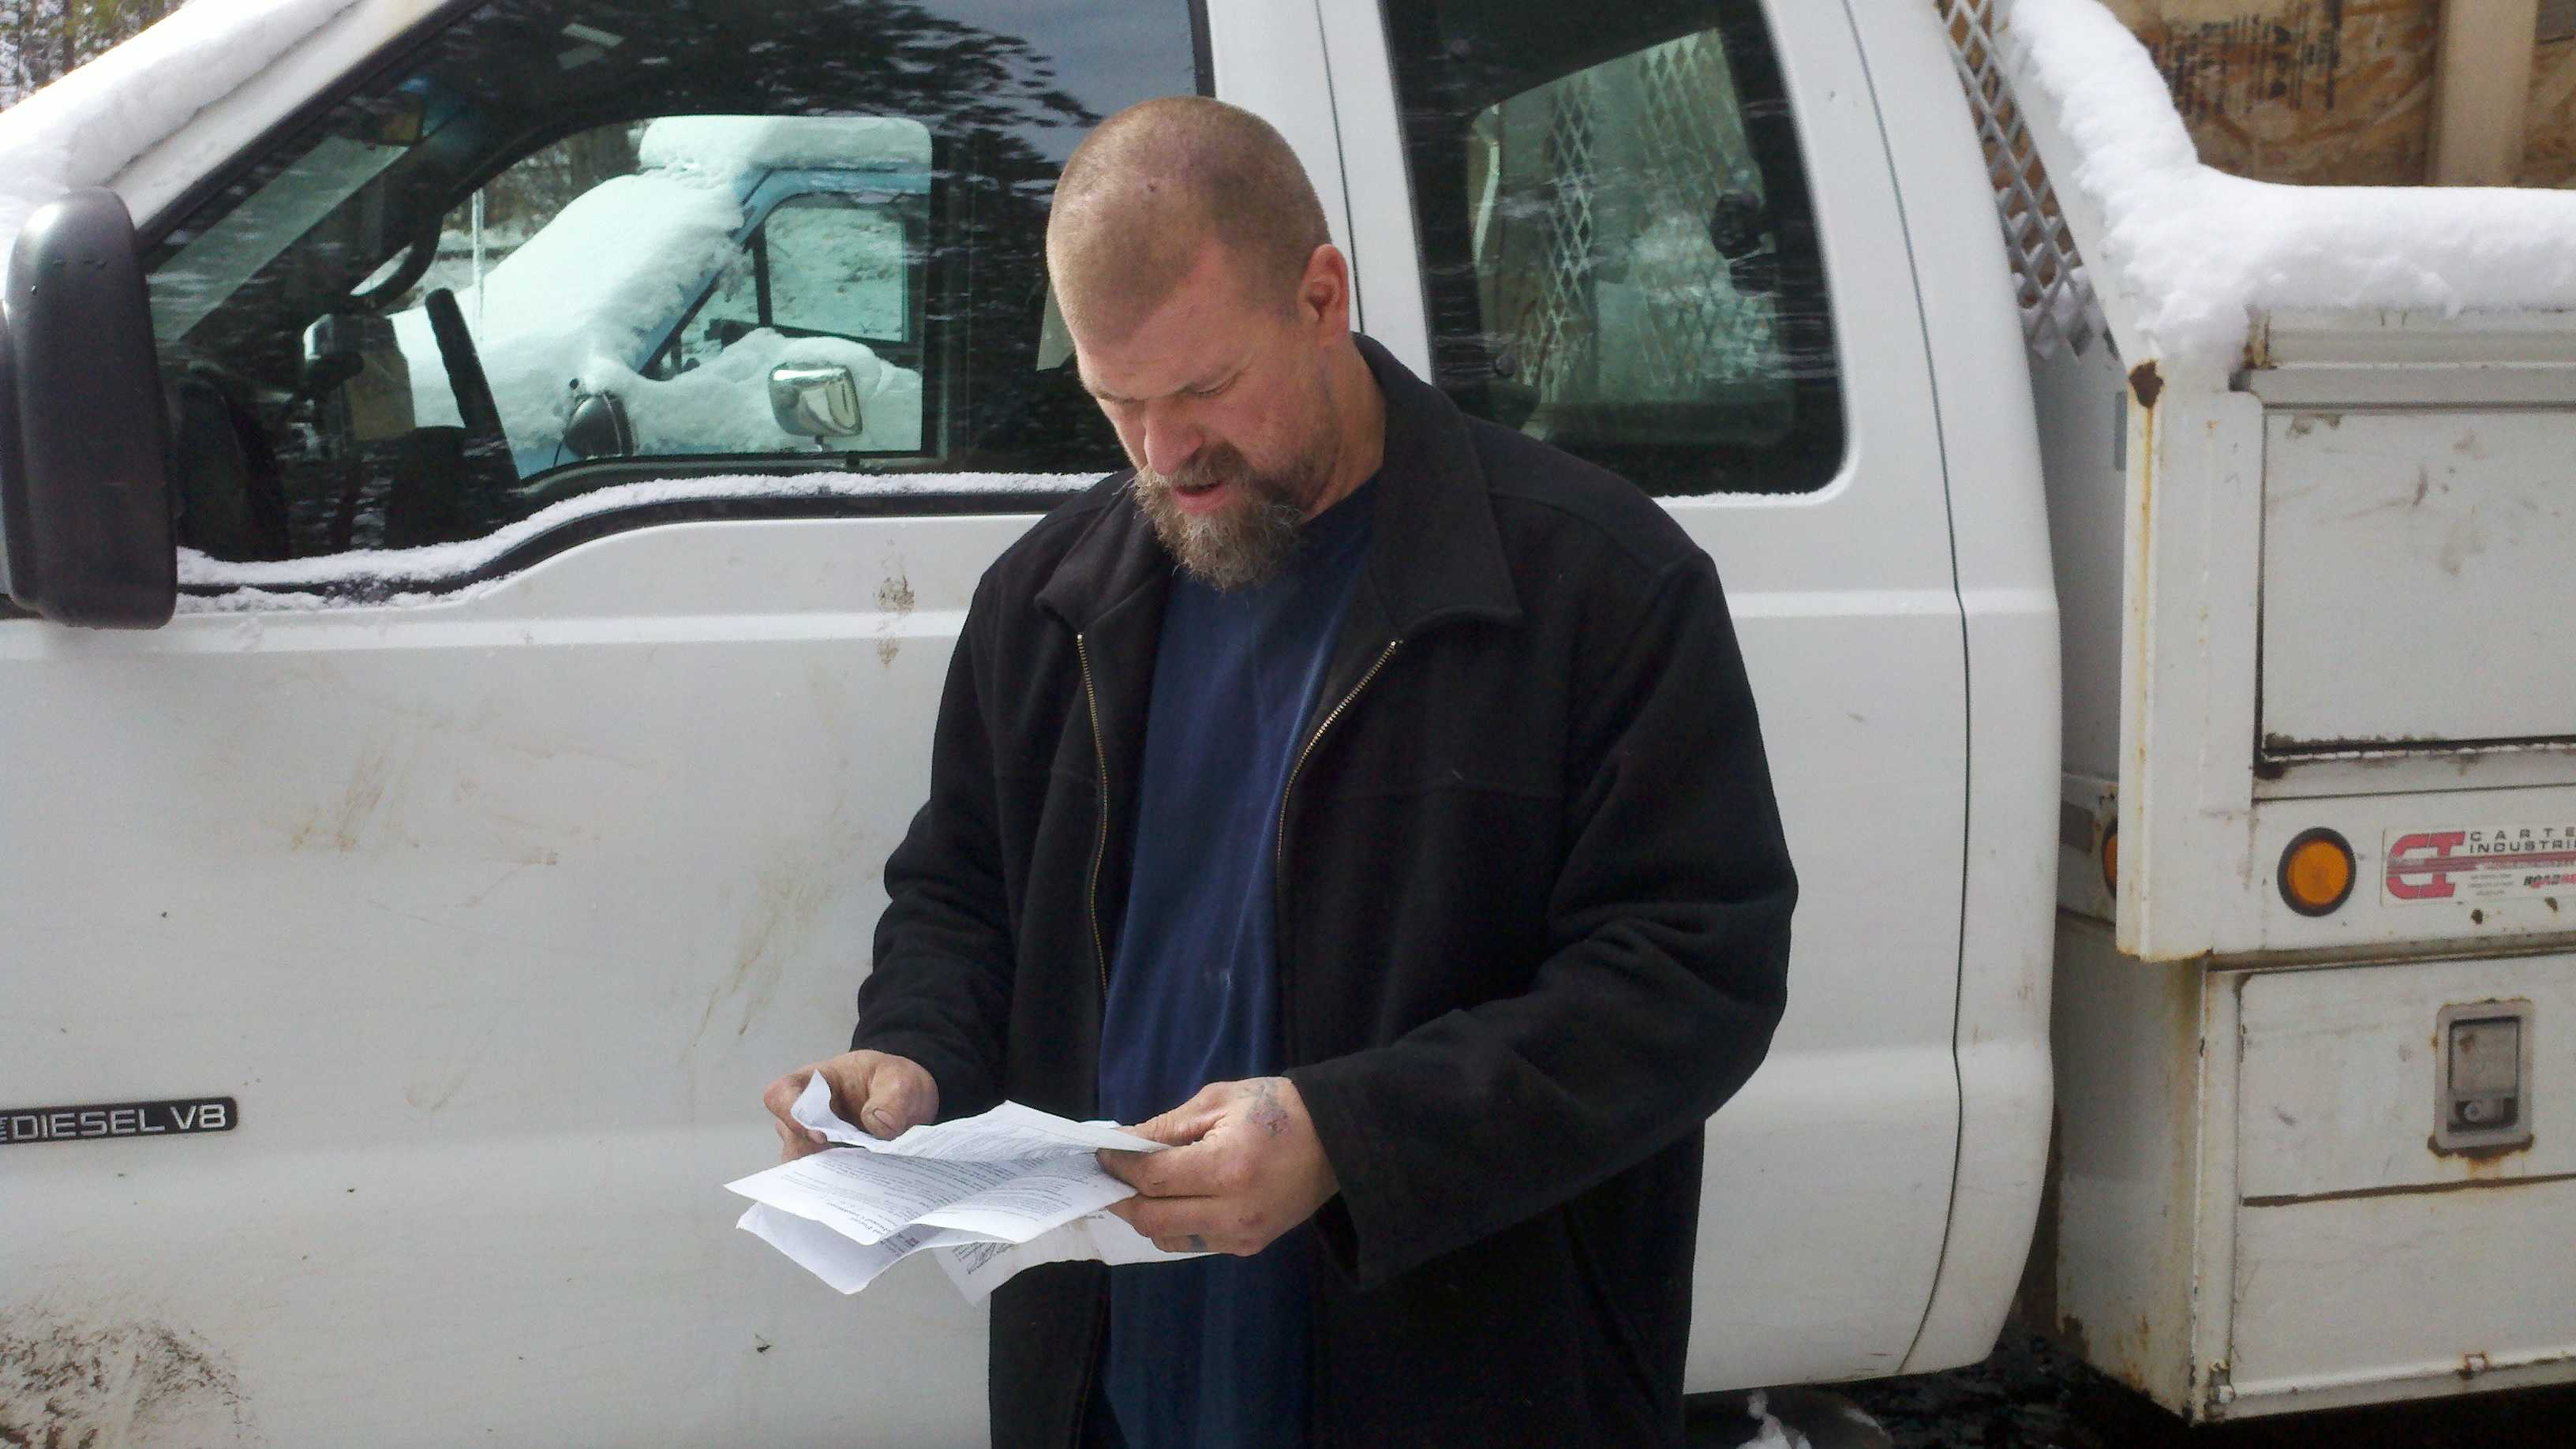 Scott Truschke said he is the focus of a federal timber theft investigation (Dec. 14, 2012).